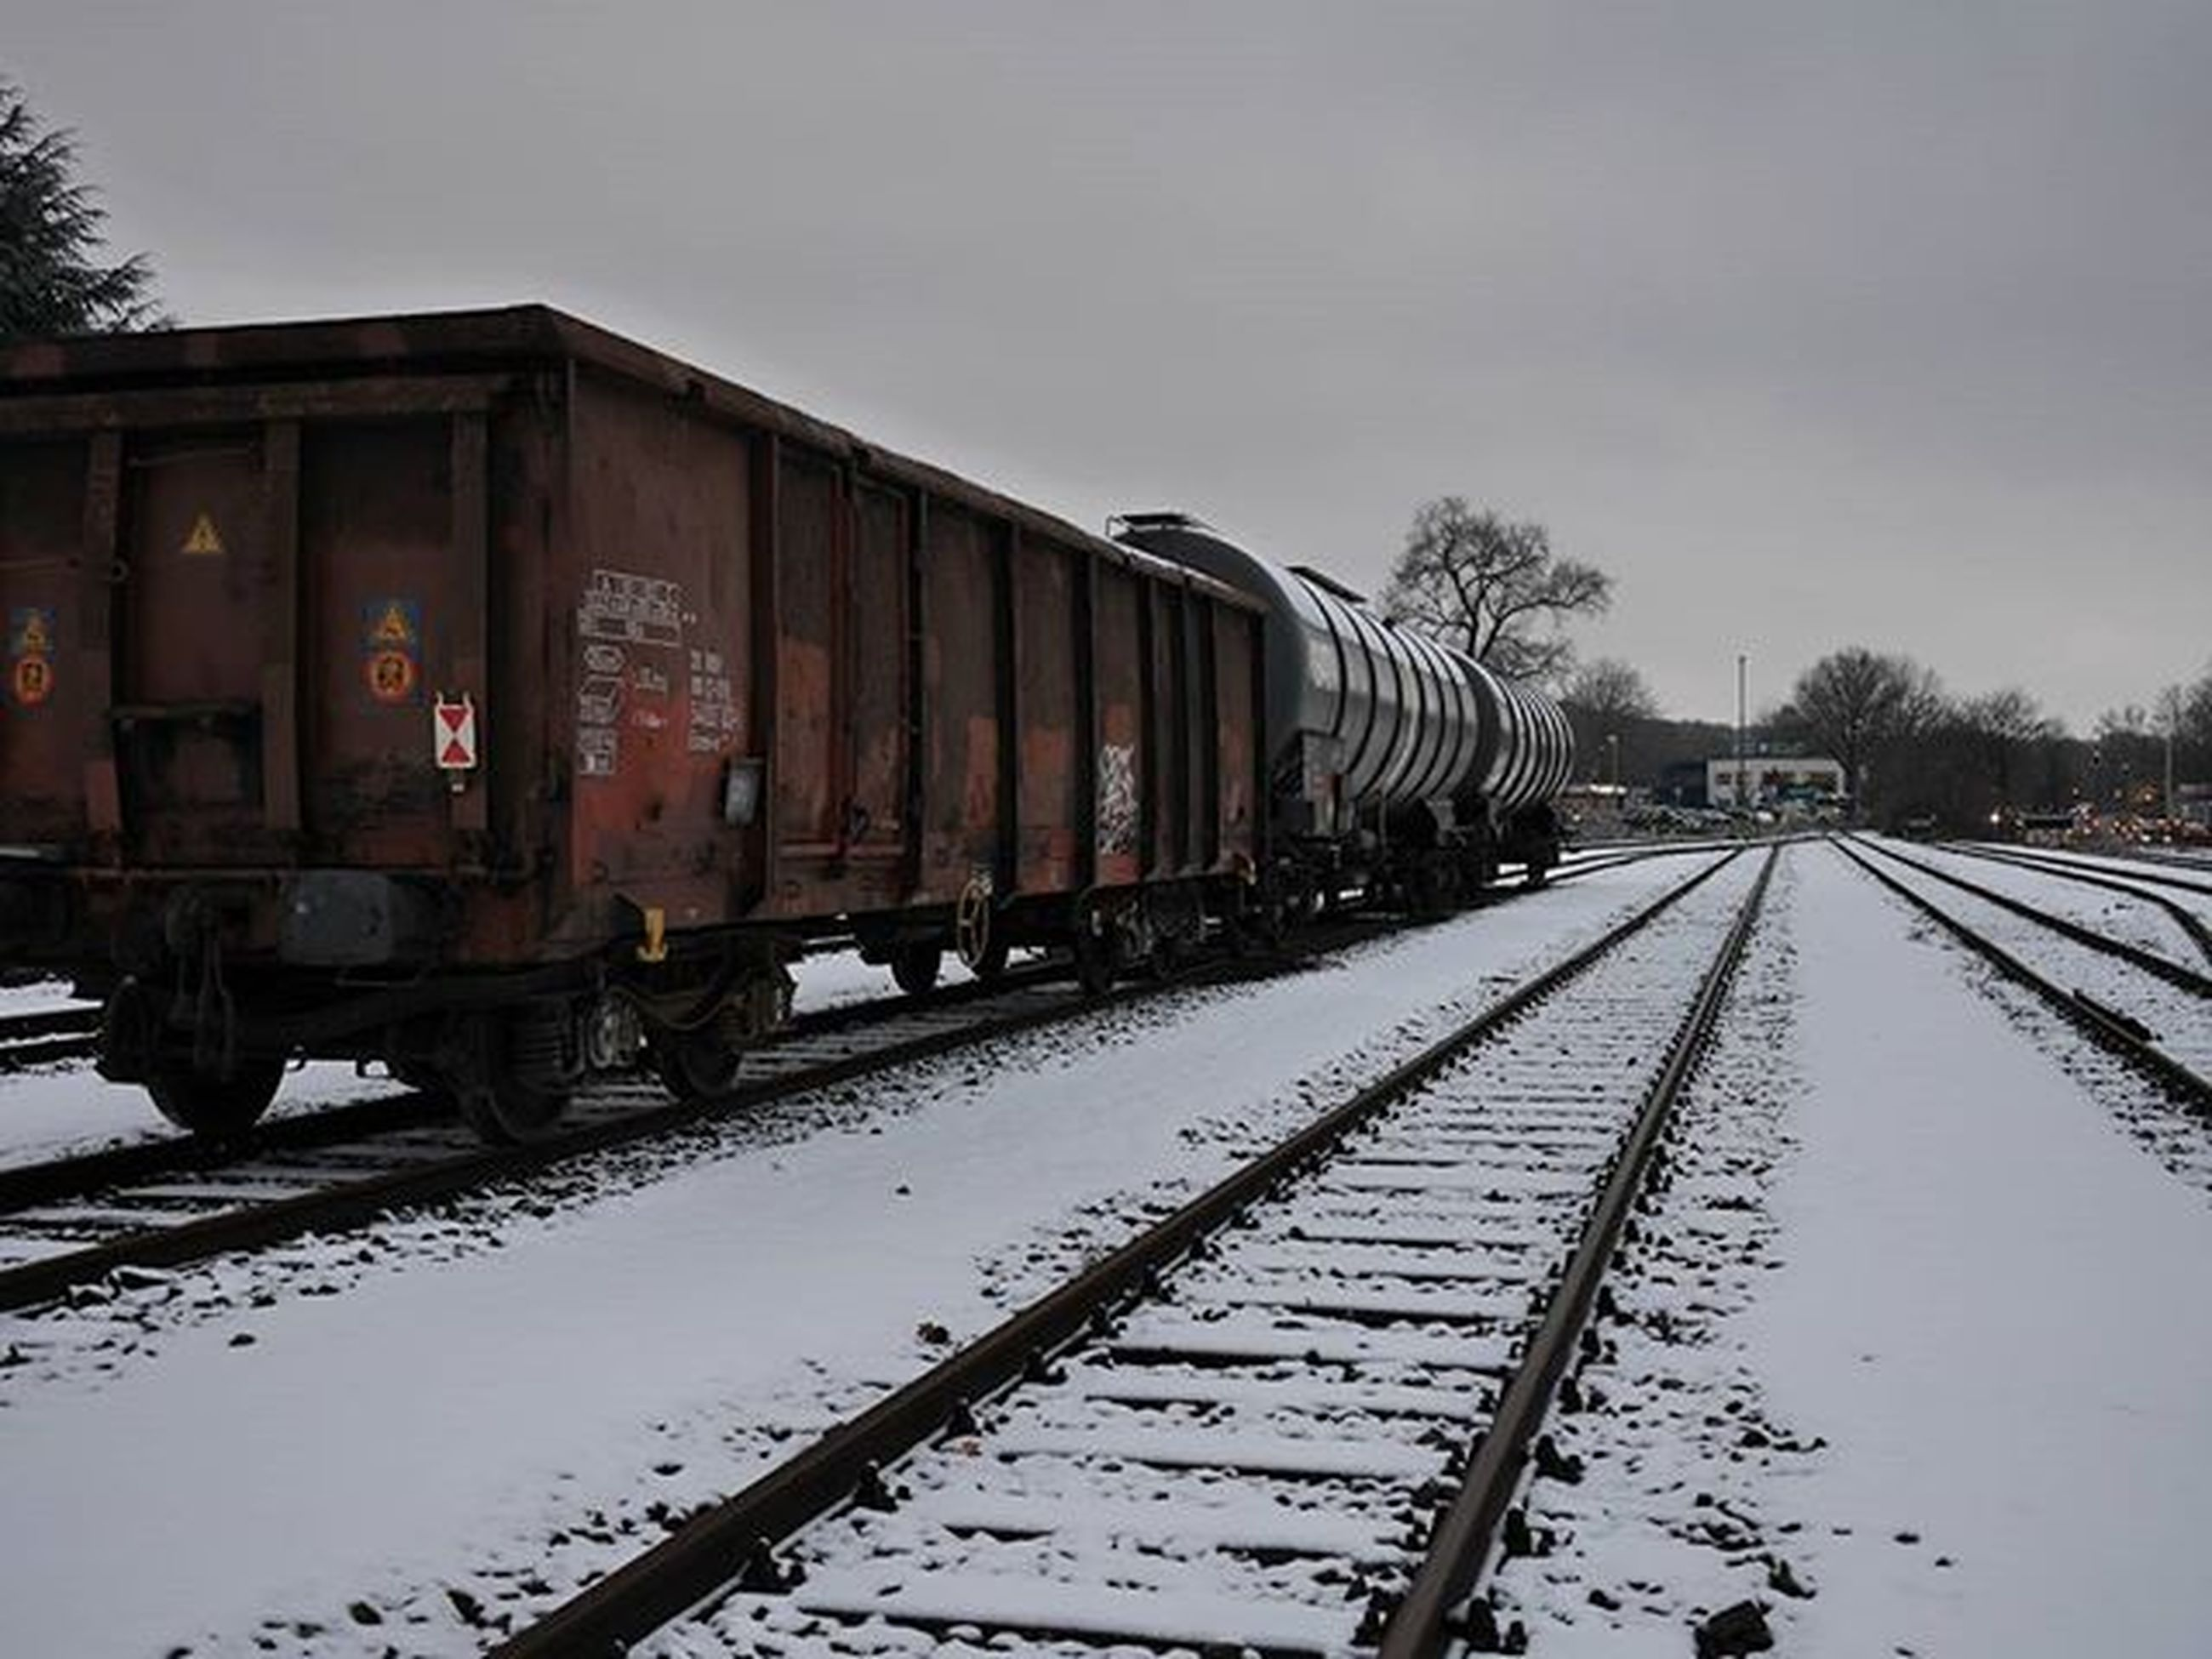 transportation, built structure, architecture, building exterior, sky, winter, mode of transport, cold temperature, season, snow, weather, the way forward, diminishing perspective, railroad track, in a row, outdoors, street, no people, day, land vehicle